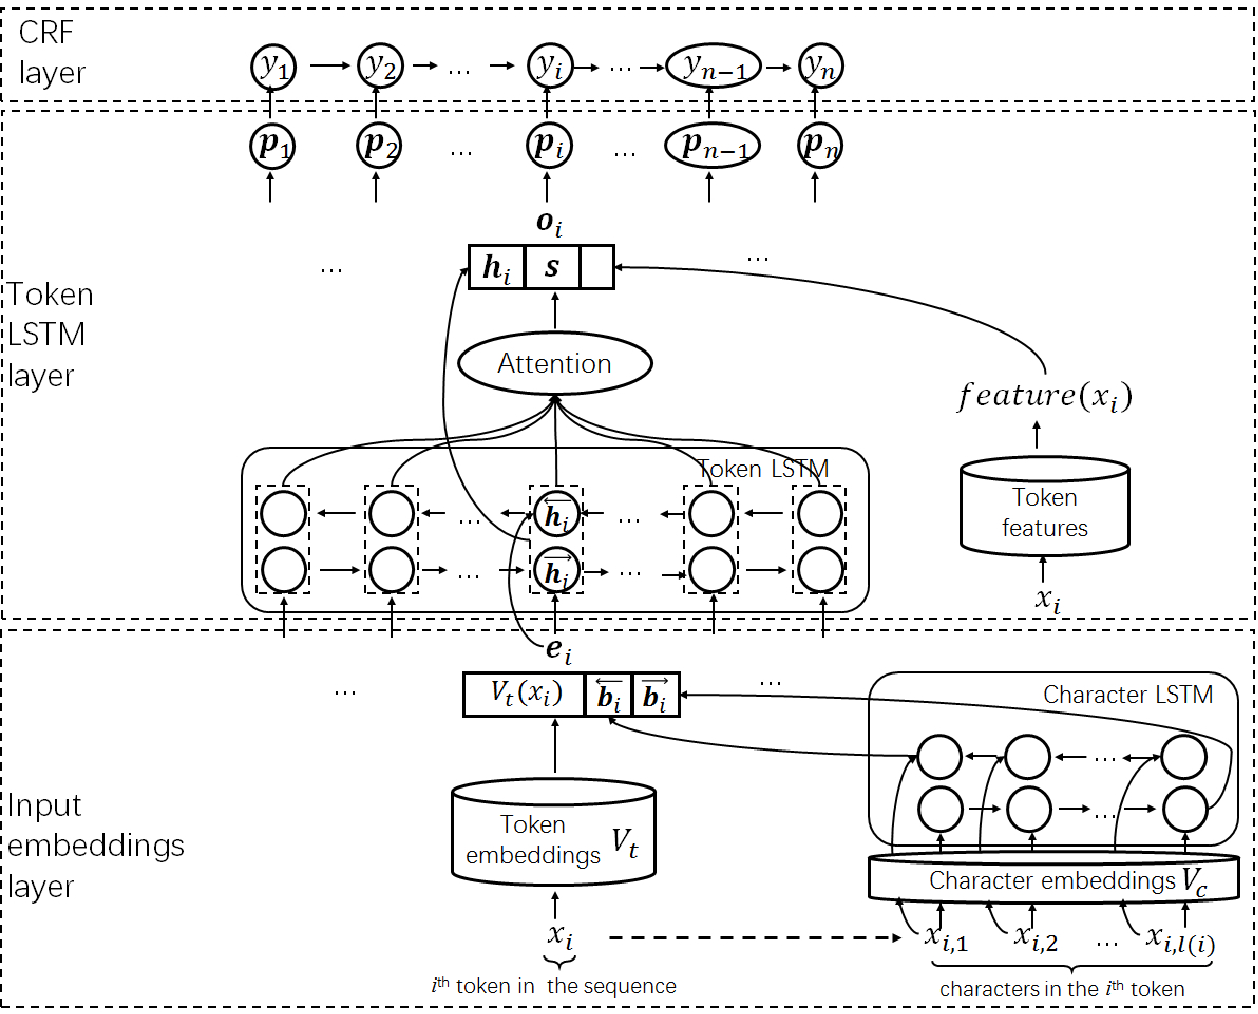 Figure 1 for Automatic Identification of Indicators of Compromise using Neural-Based Sequence Labelling